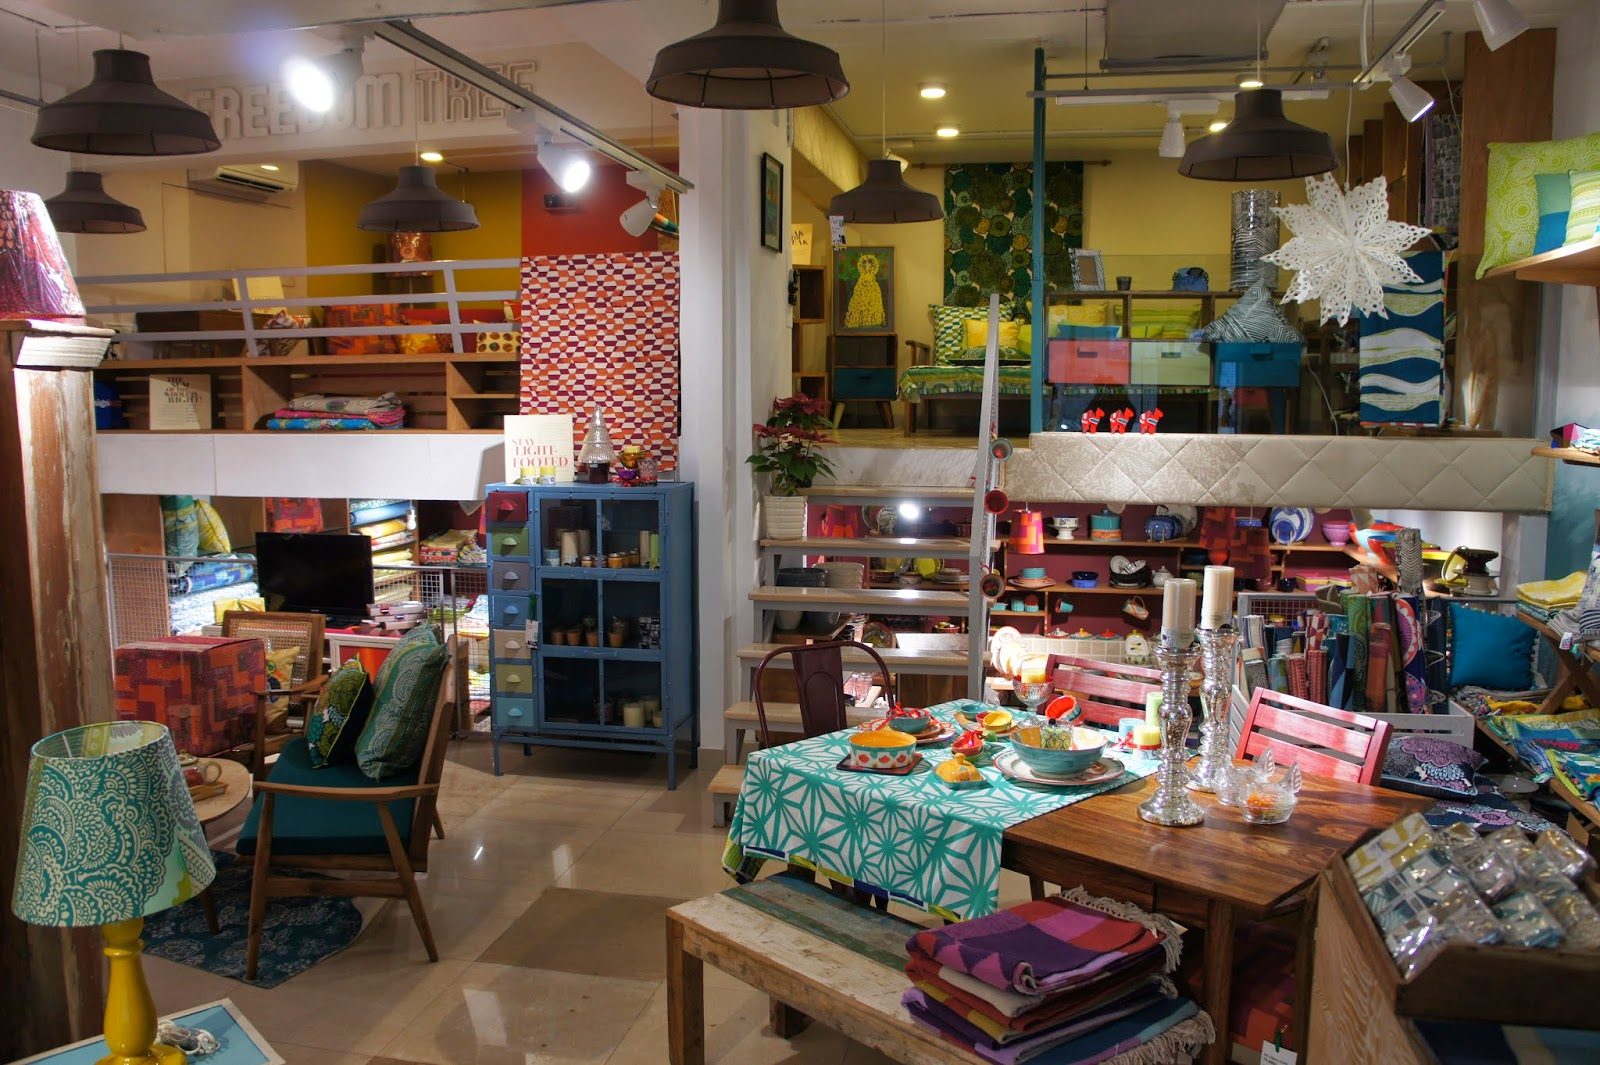 Bombayjules my a z of mumbai shopping - Home decor stores in charlotte nc image ...